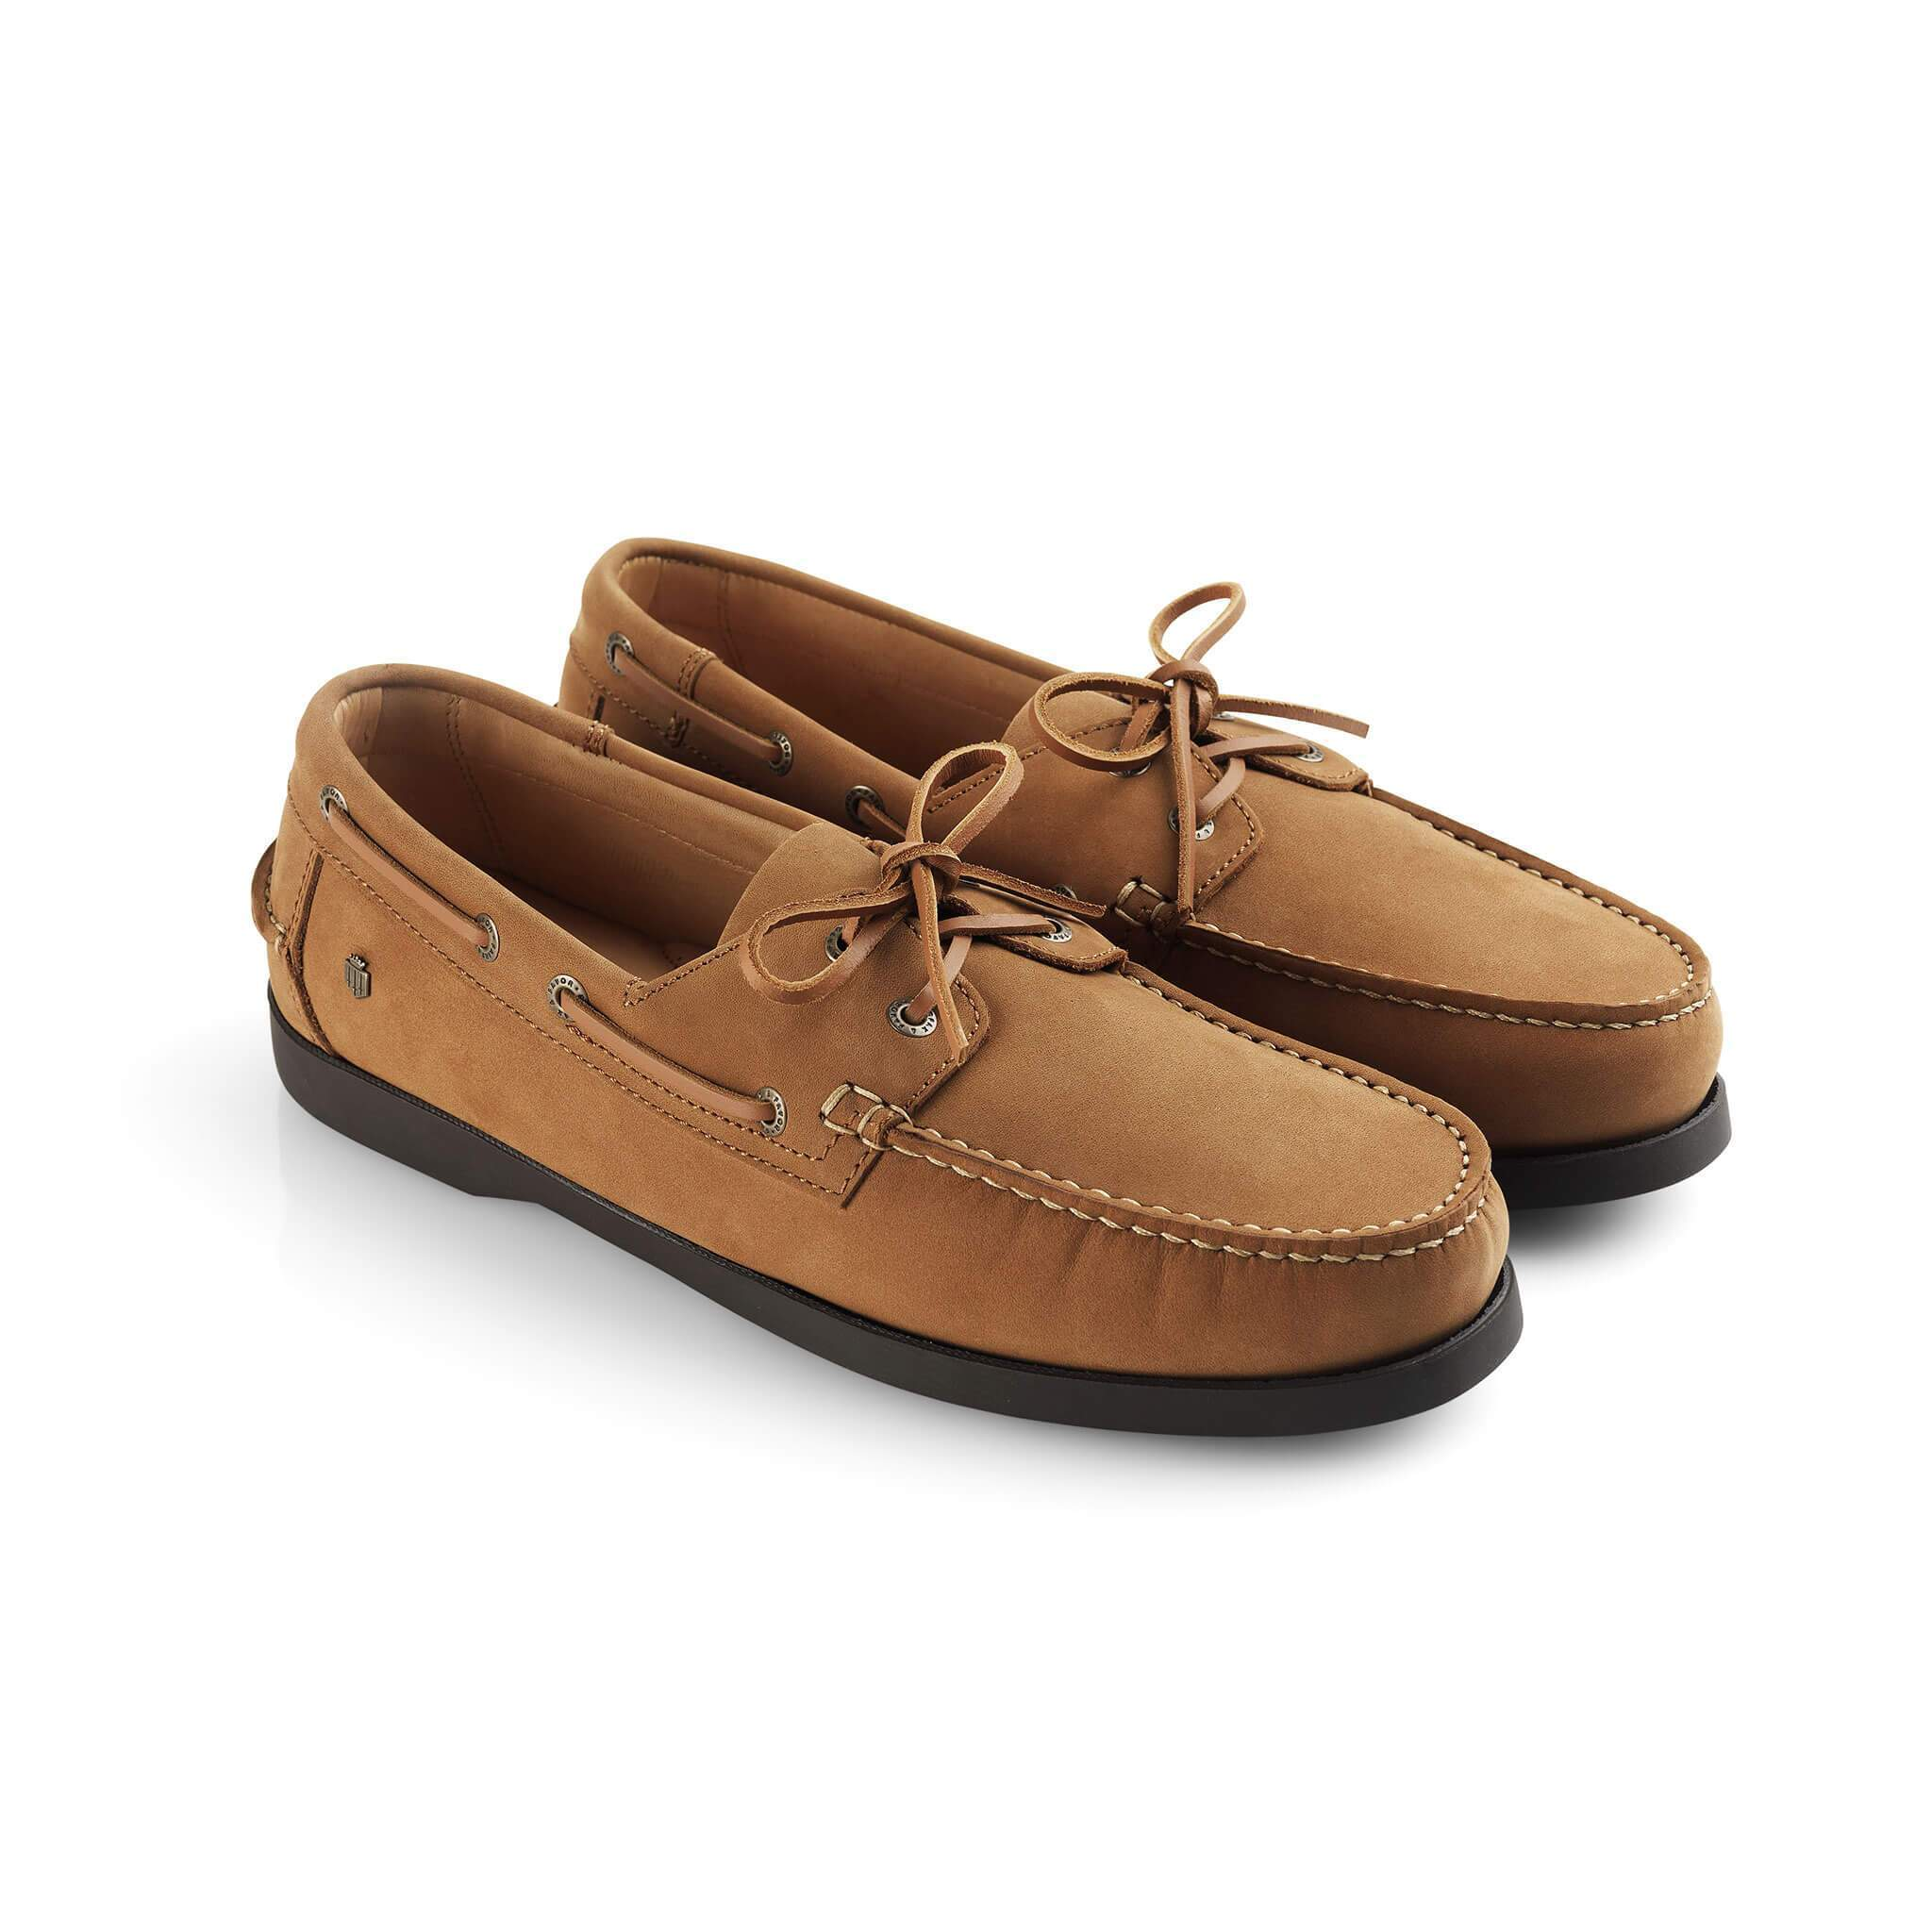 Padstow Deck Shoes, ruskind, lysebrun/tan